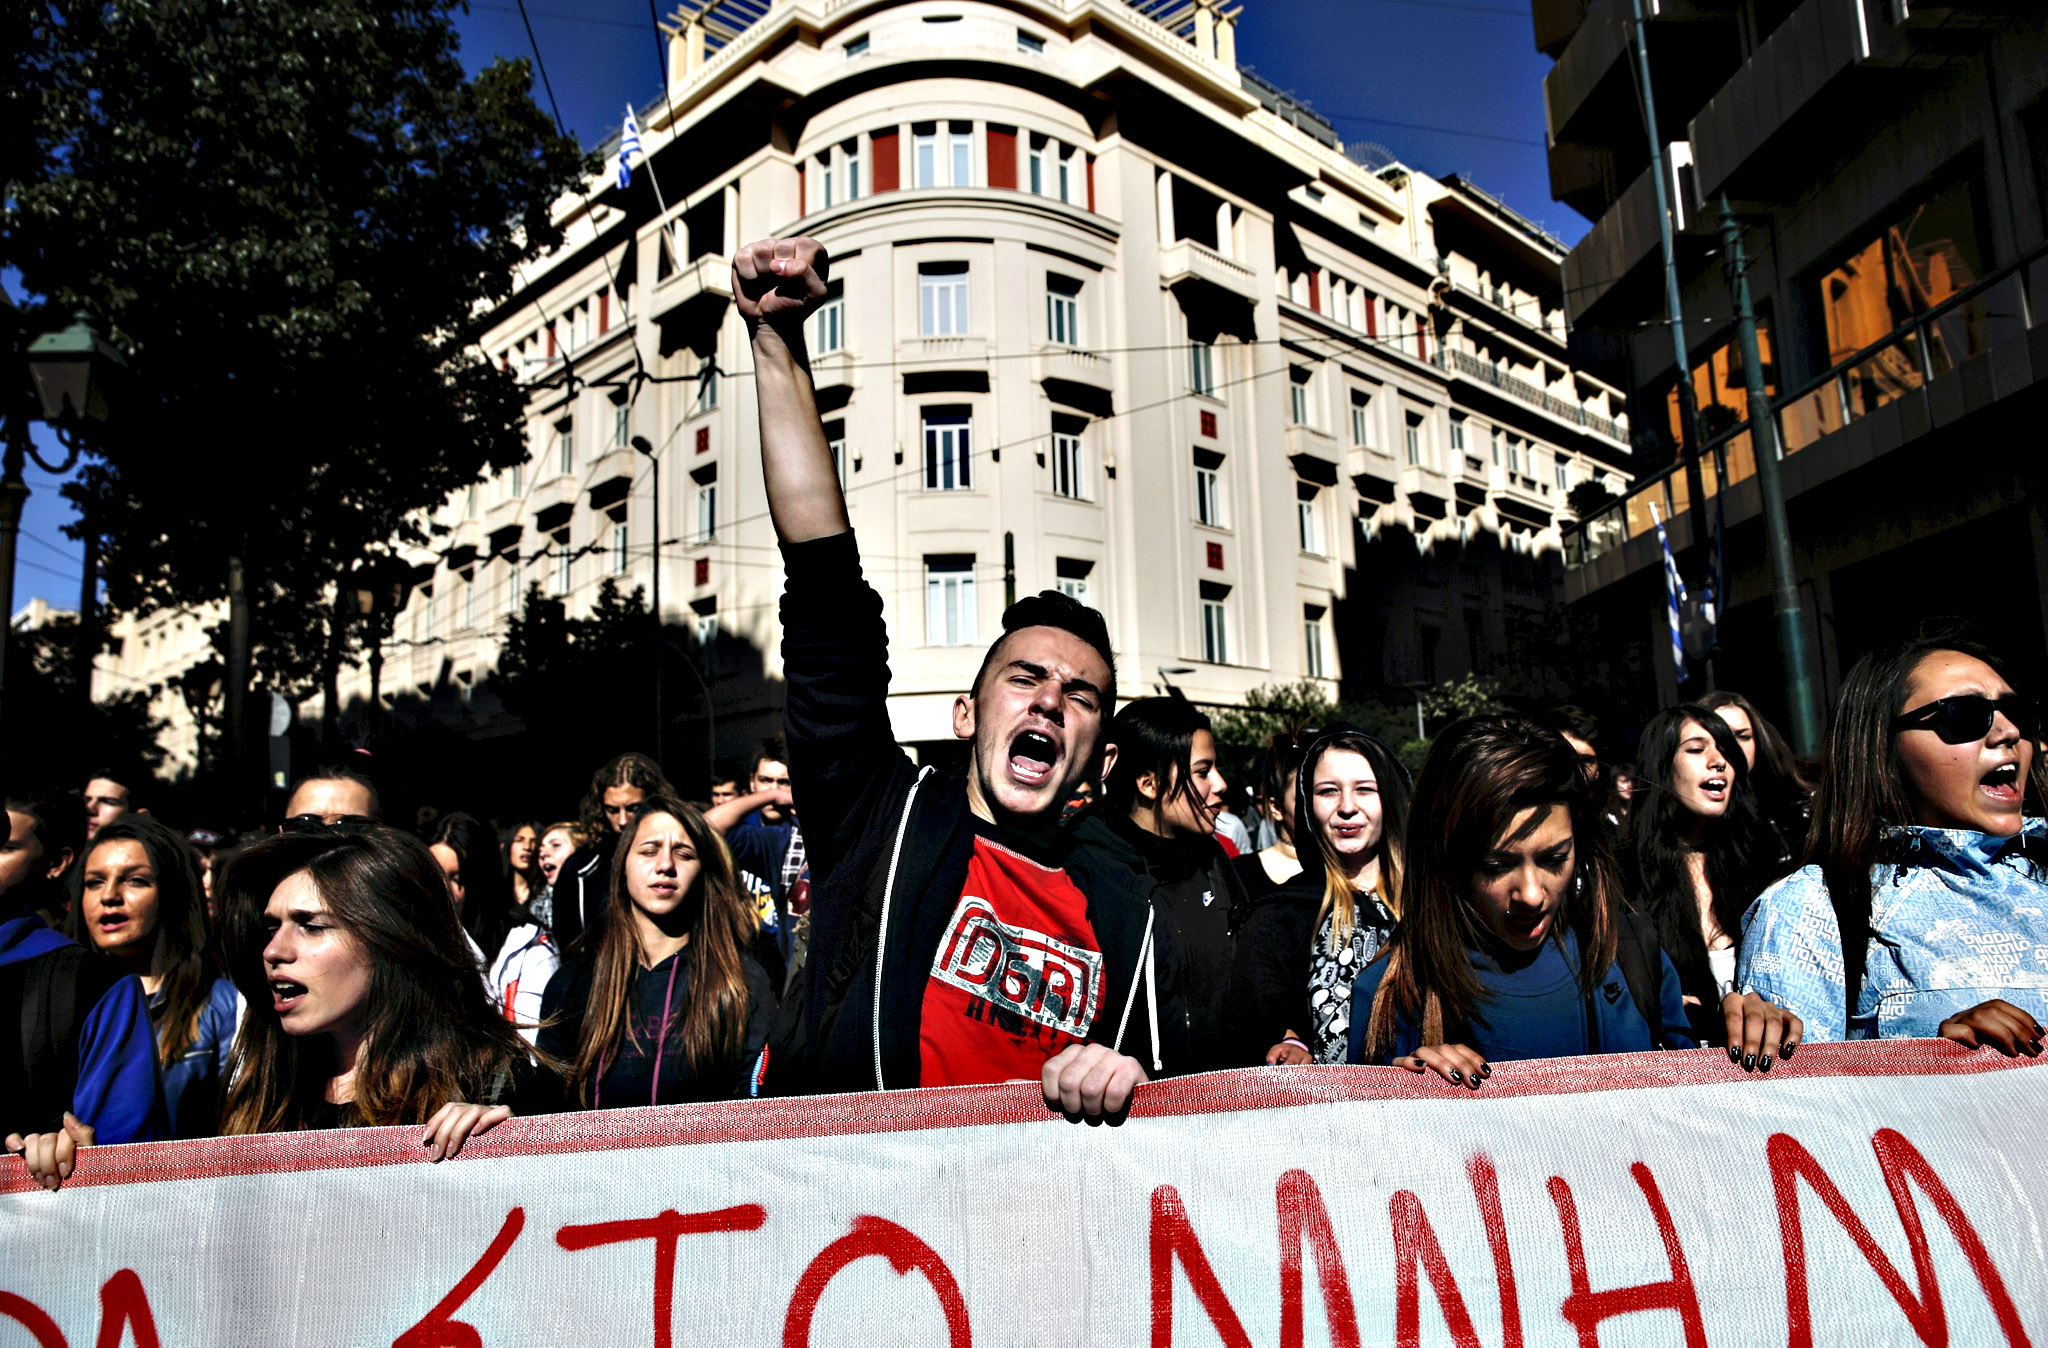 Students shout slogans during a demonstration of thousands of students against government reforms in education in central Athens, Greece, on Monday